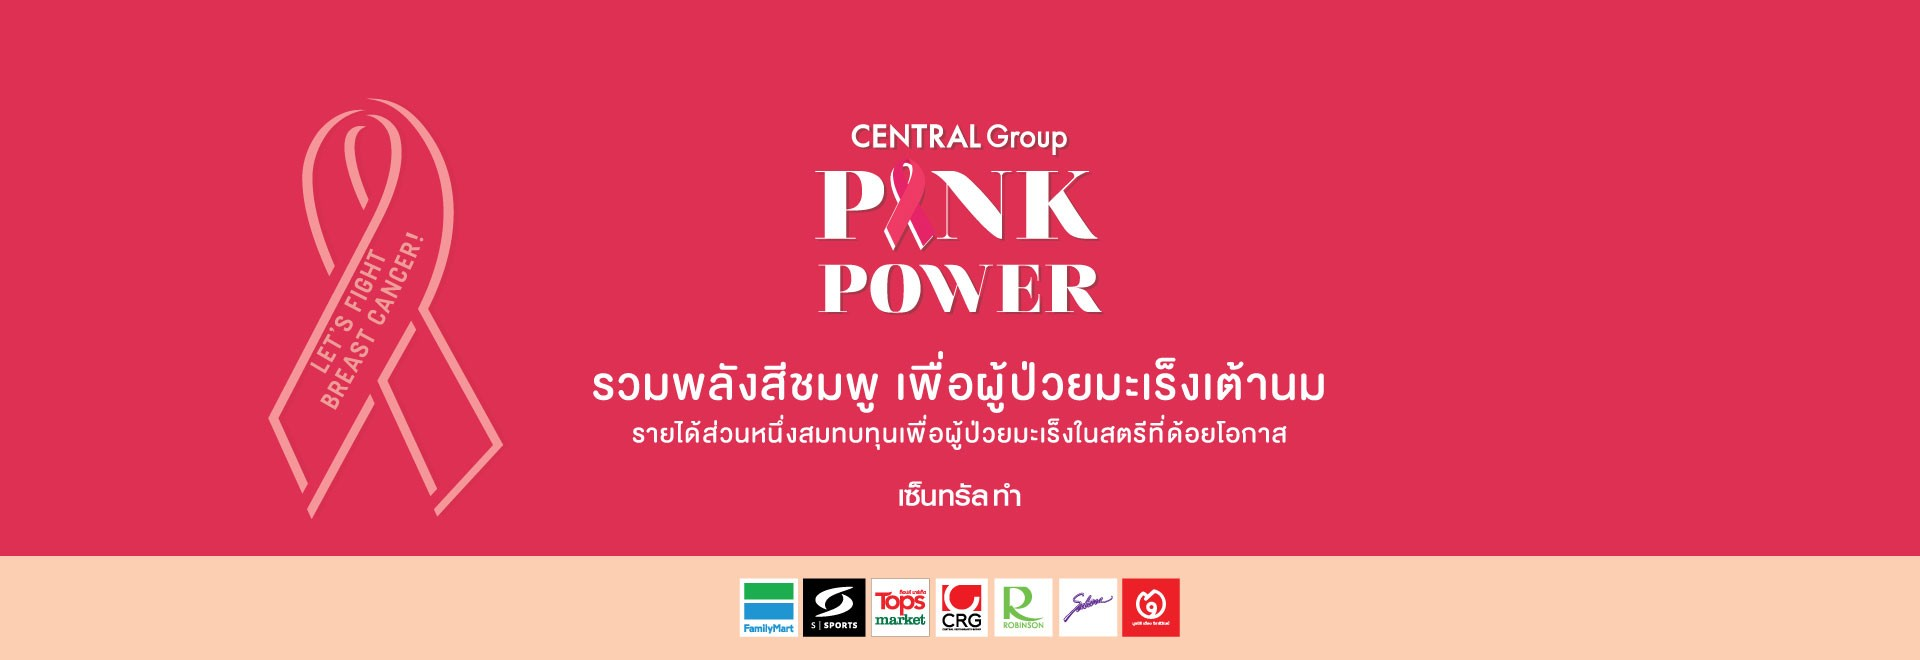 CENTRAL Group Pink Power